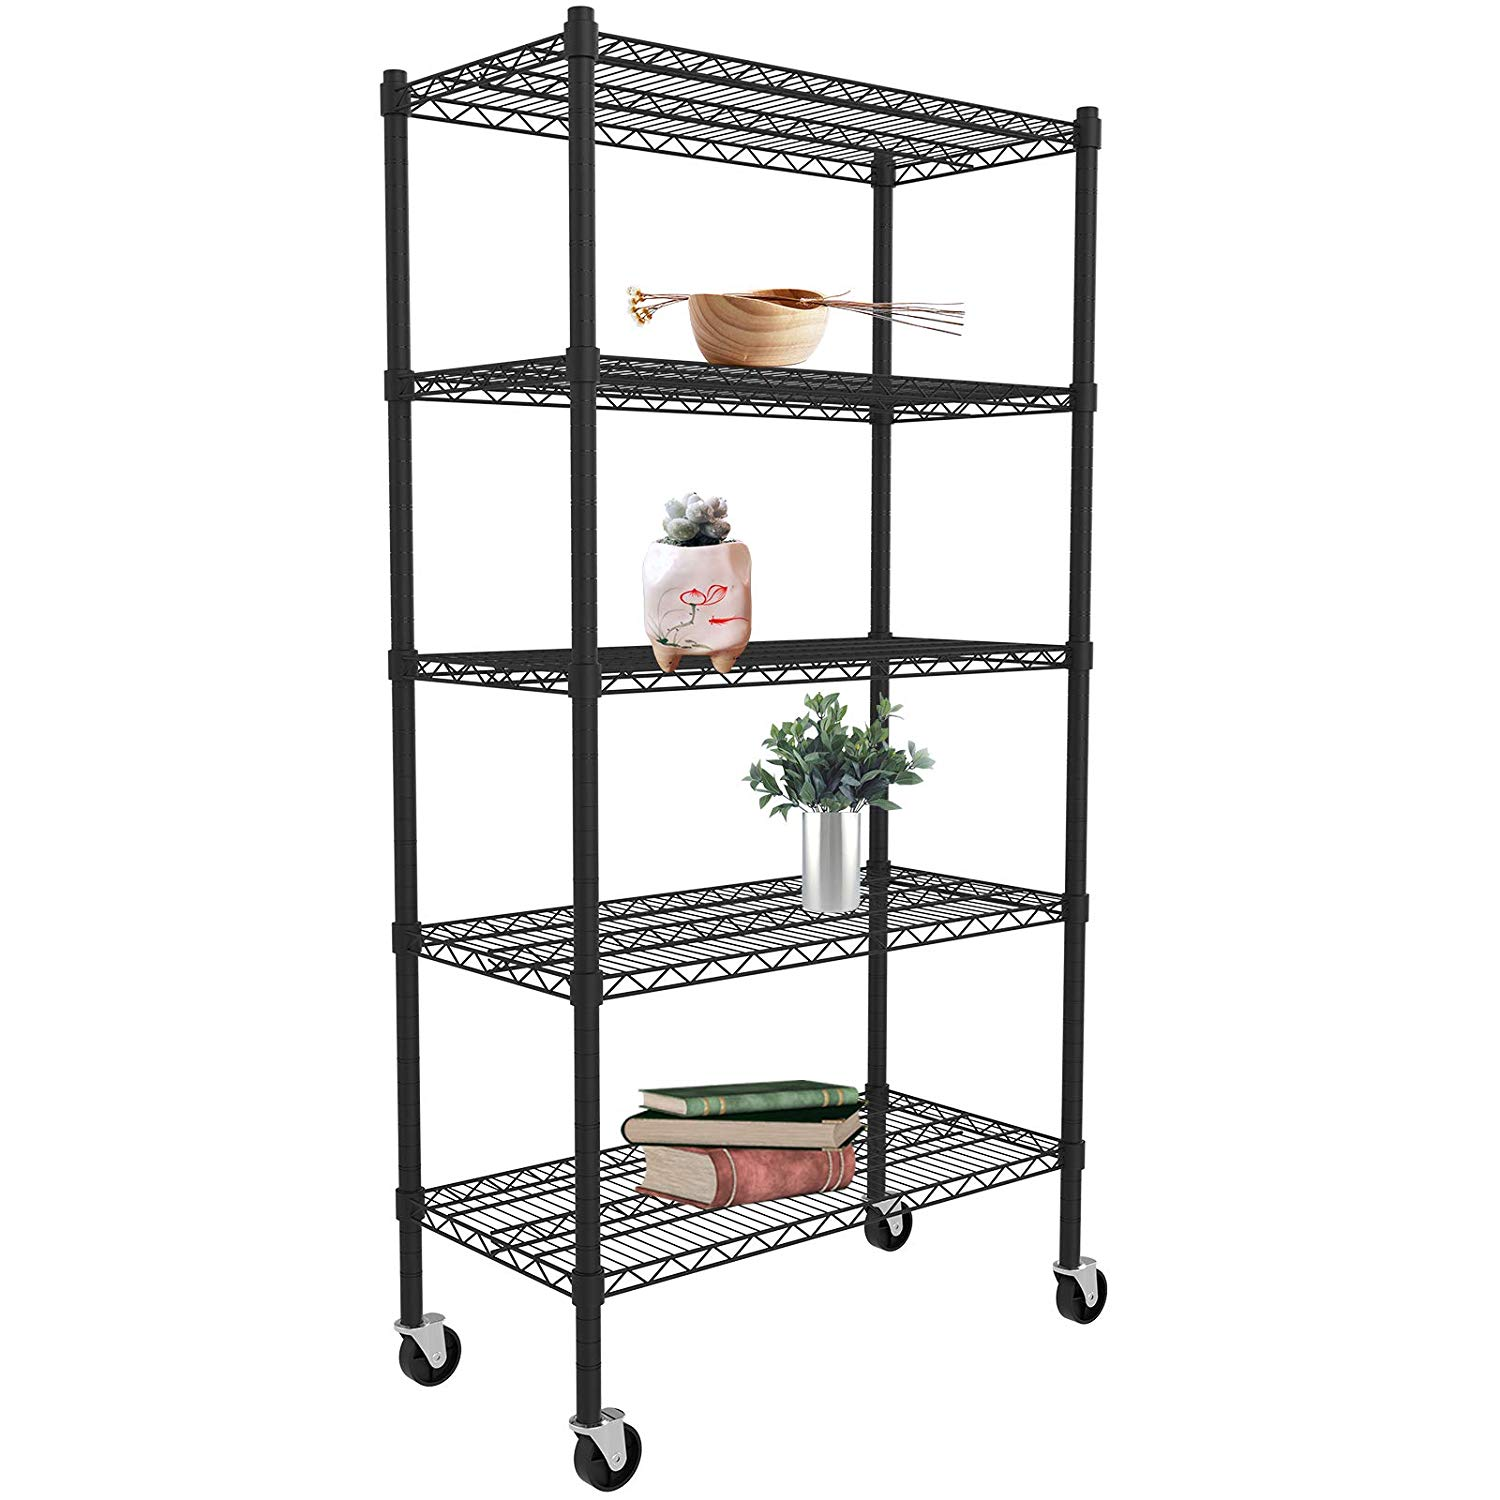 Clearance Black Metal Shelving Unit 5 Tier Heavy Duty